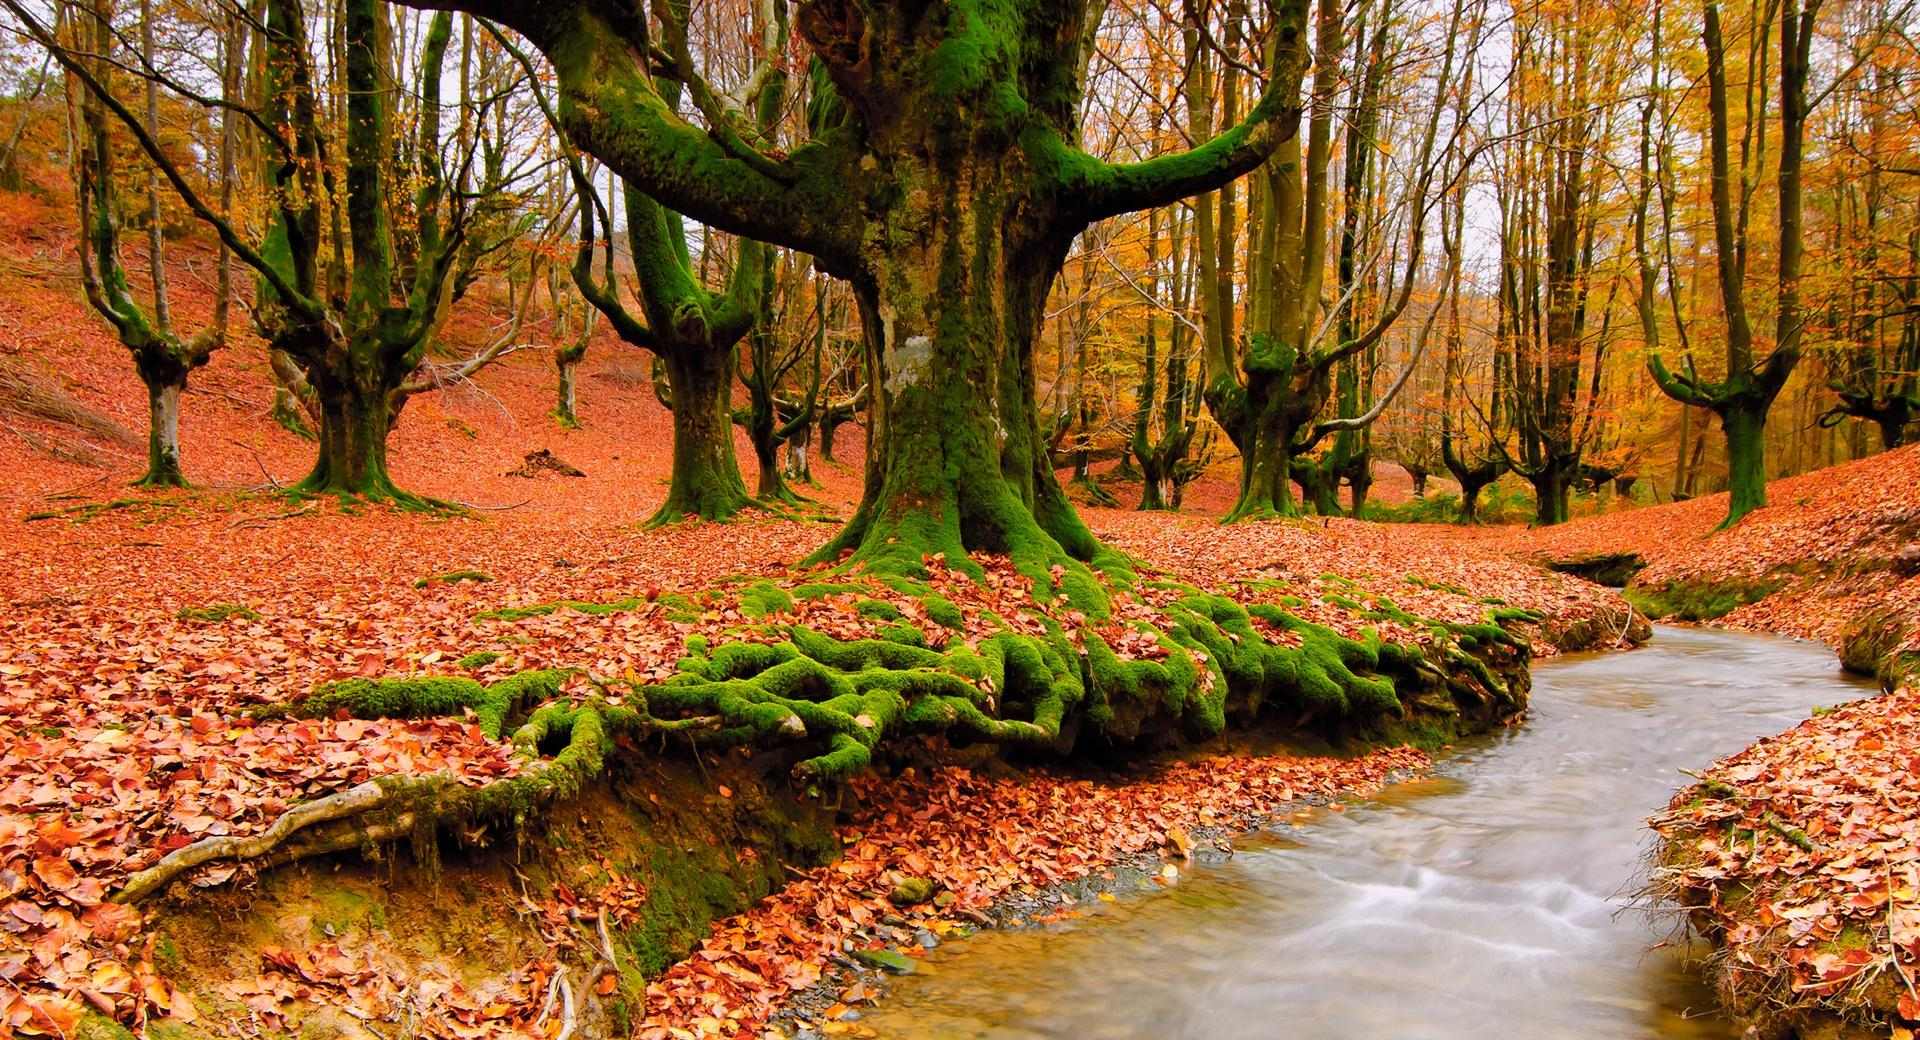 Strange Forest Autumn wallpapers HD quality